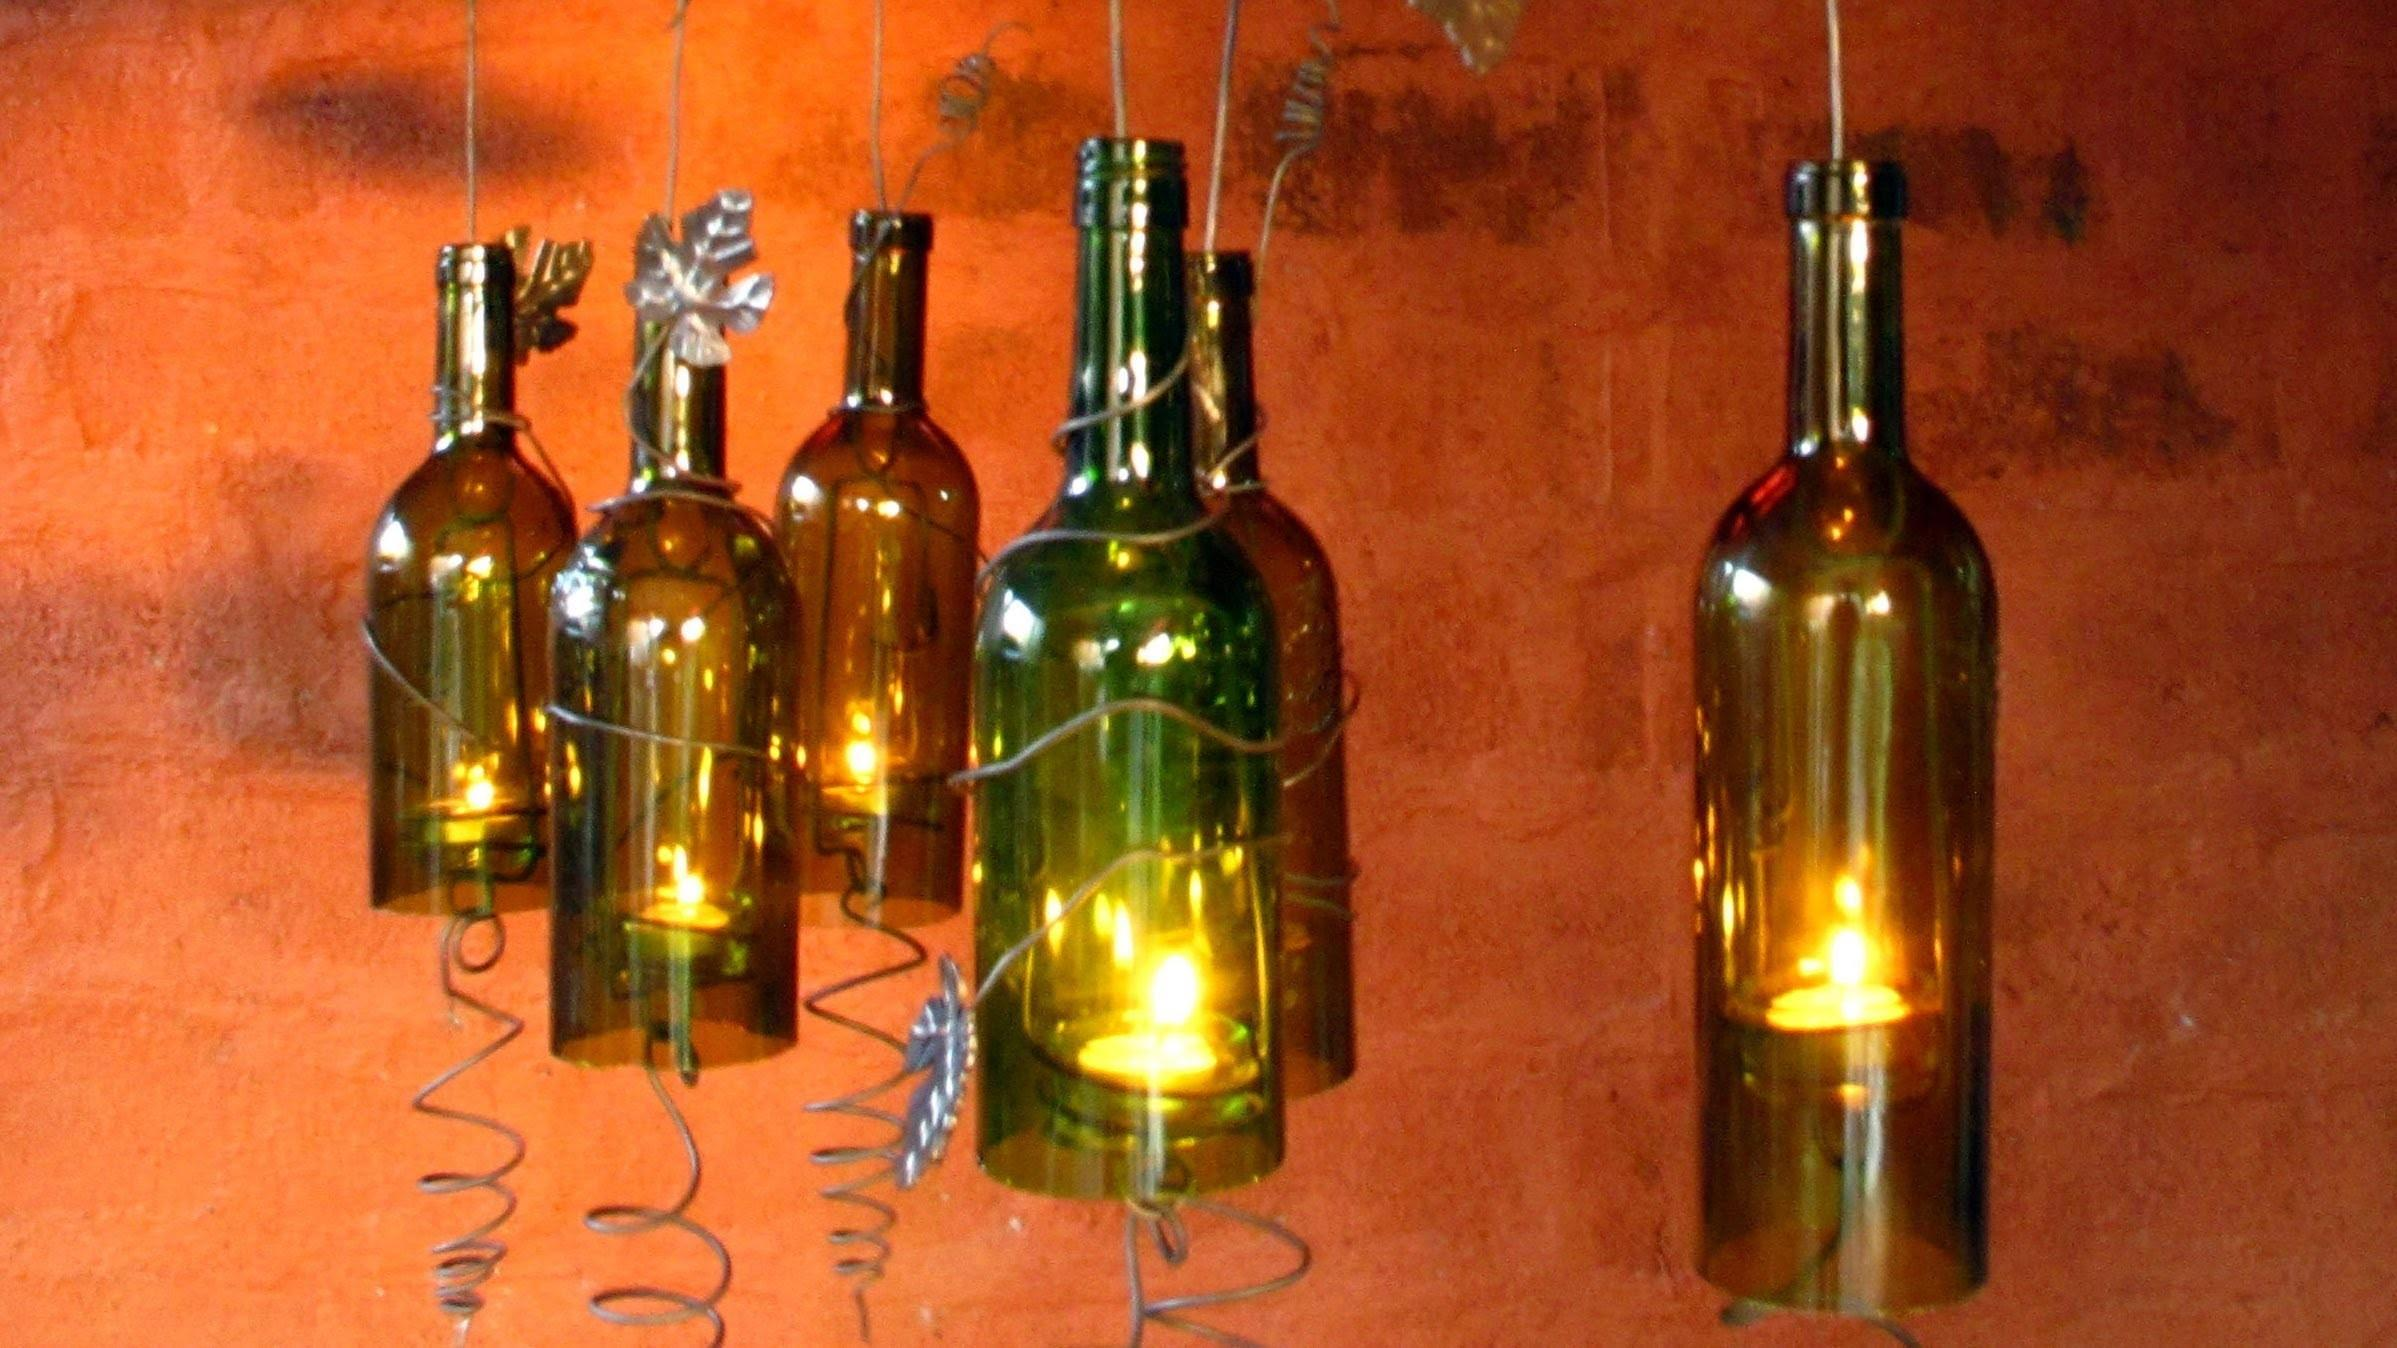 Diy Recycled Wine Bottles Made Into Hurricane Candle